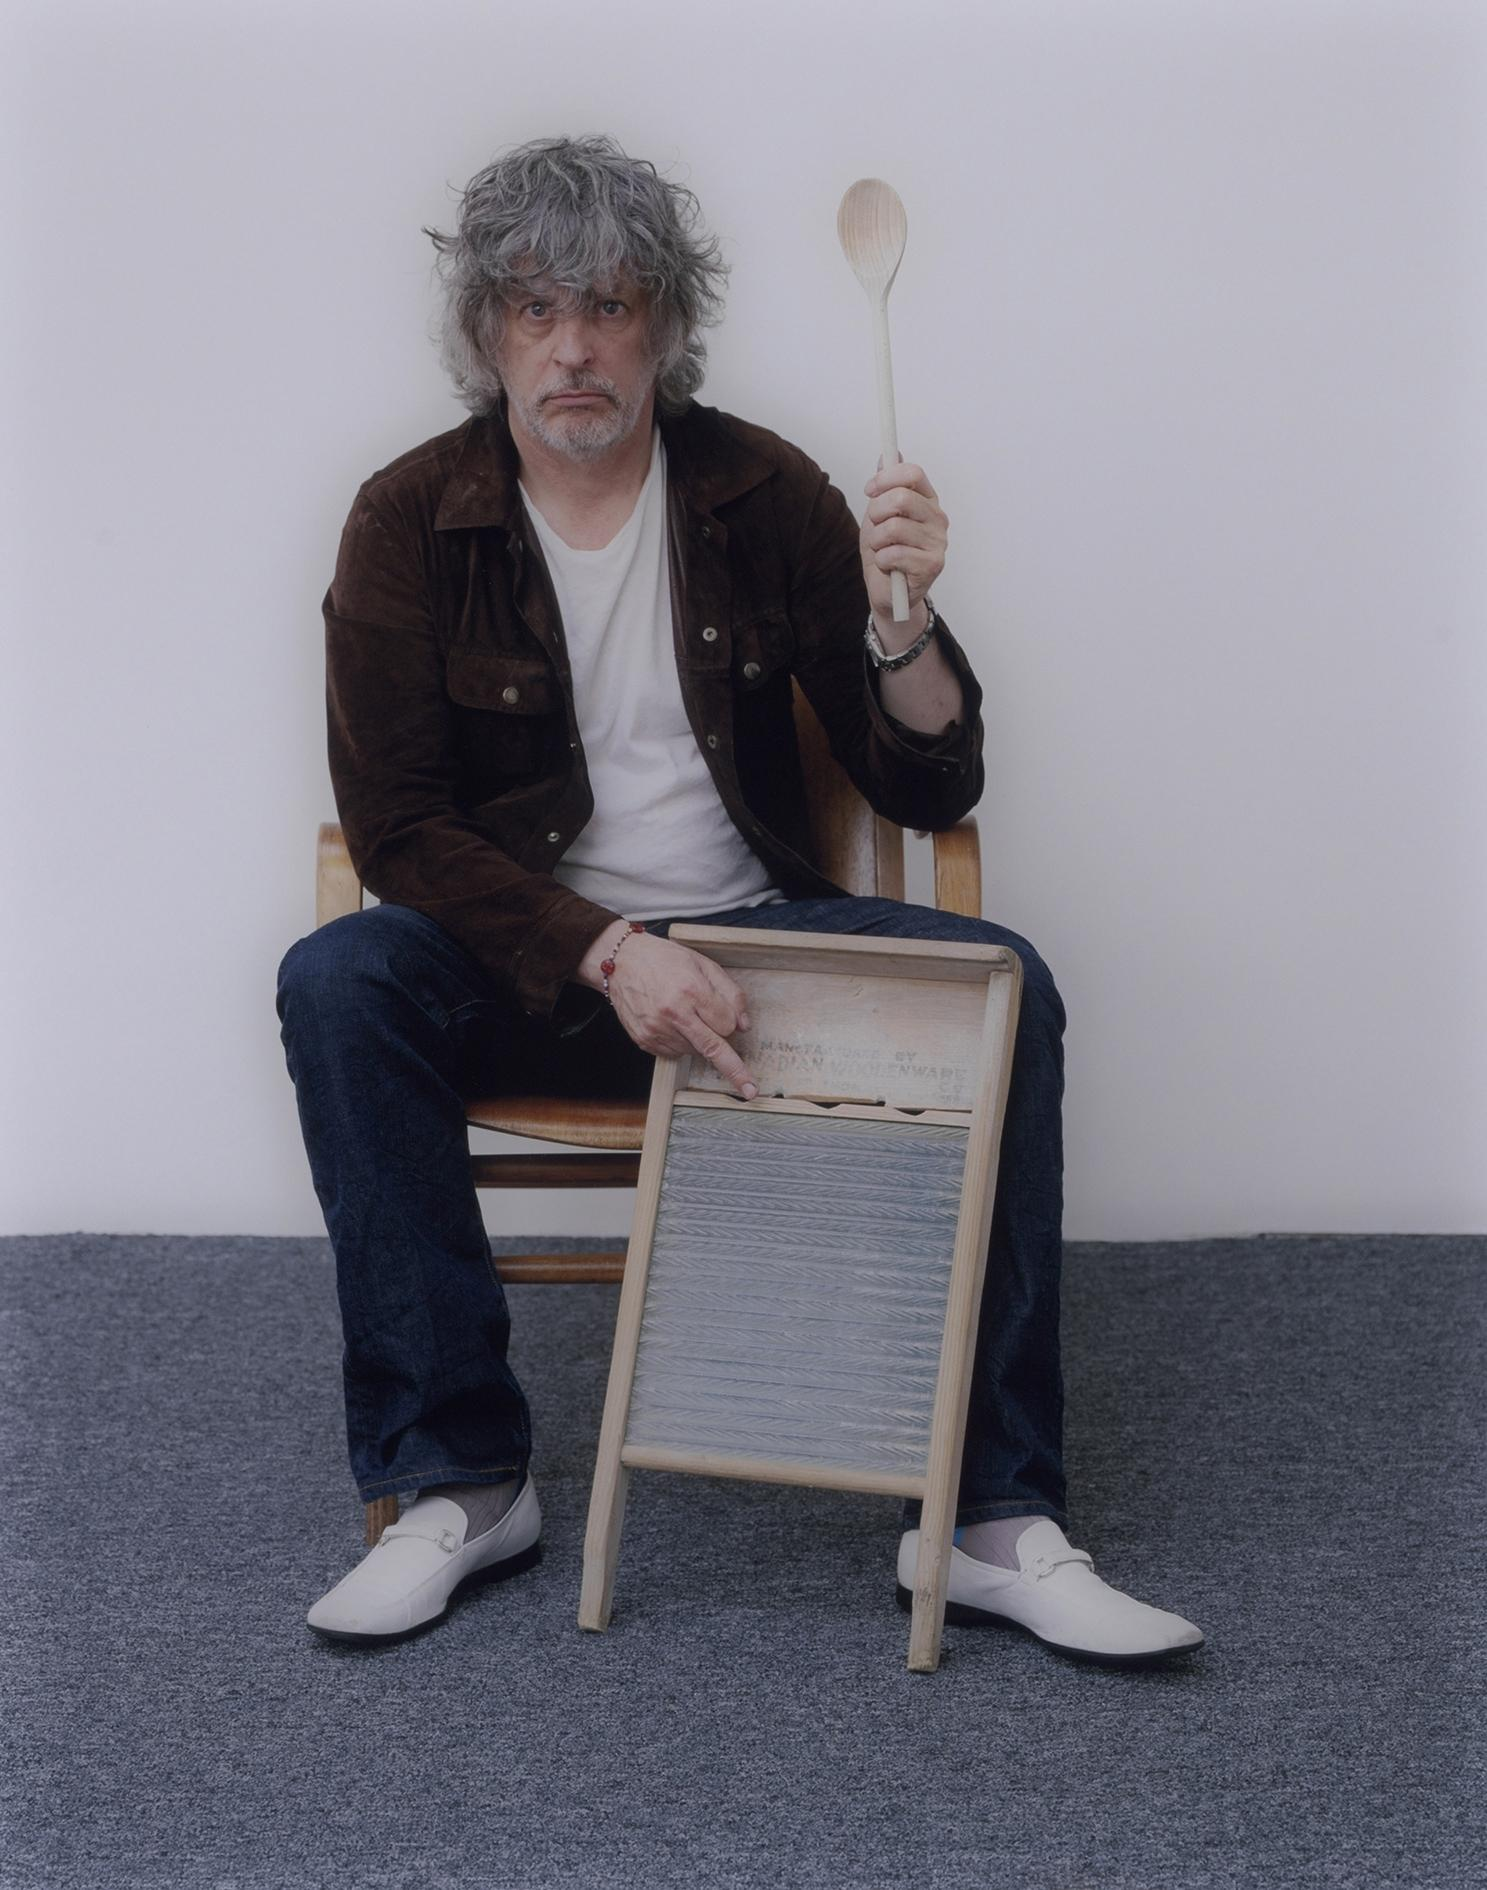 A light-skinned man with gray and disheveled chin-length hair sits on a chair, staring at the camera. In his left hand, he holds a long wooden spoon straight up in the air. His right middle finger is extended above a wood-and-metal washing board against his leg.